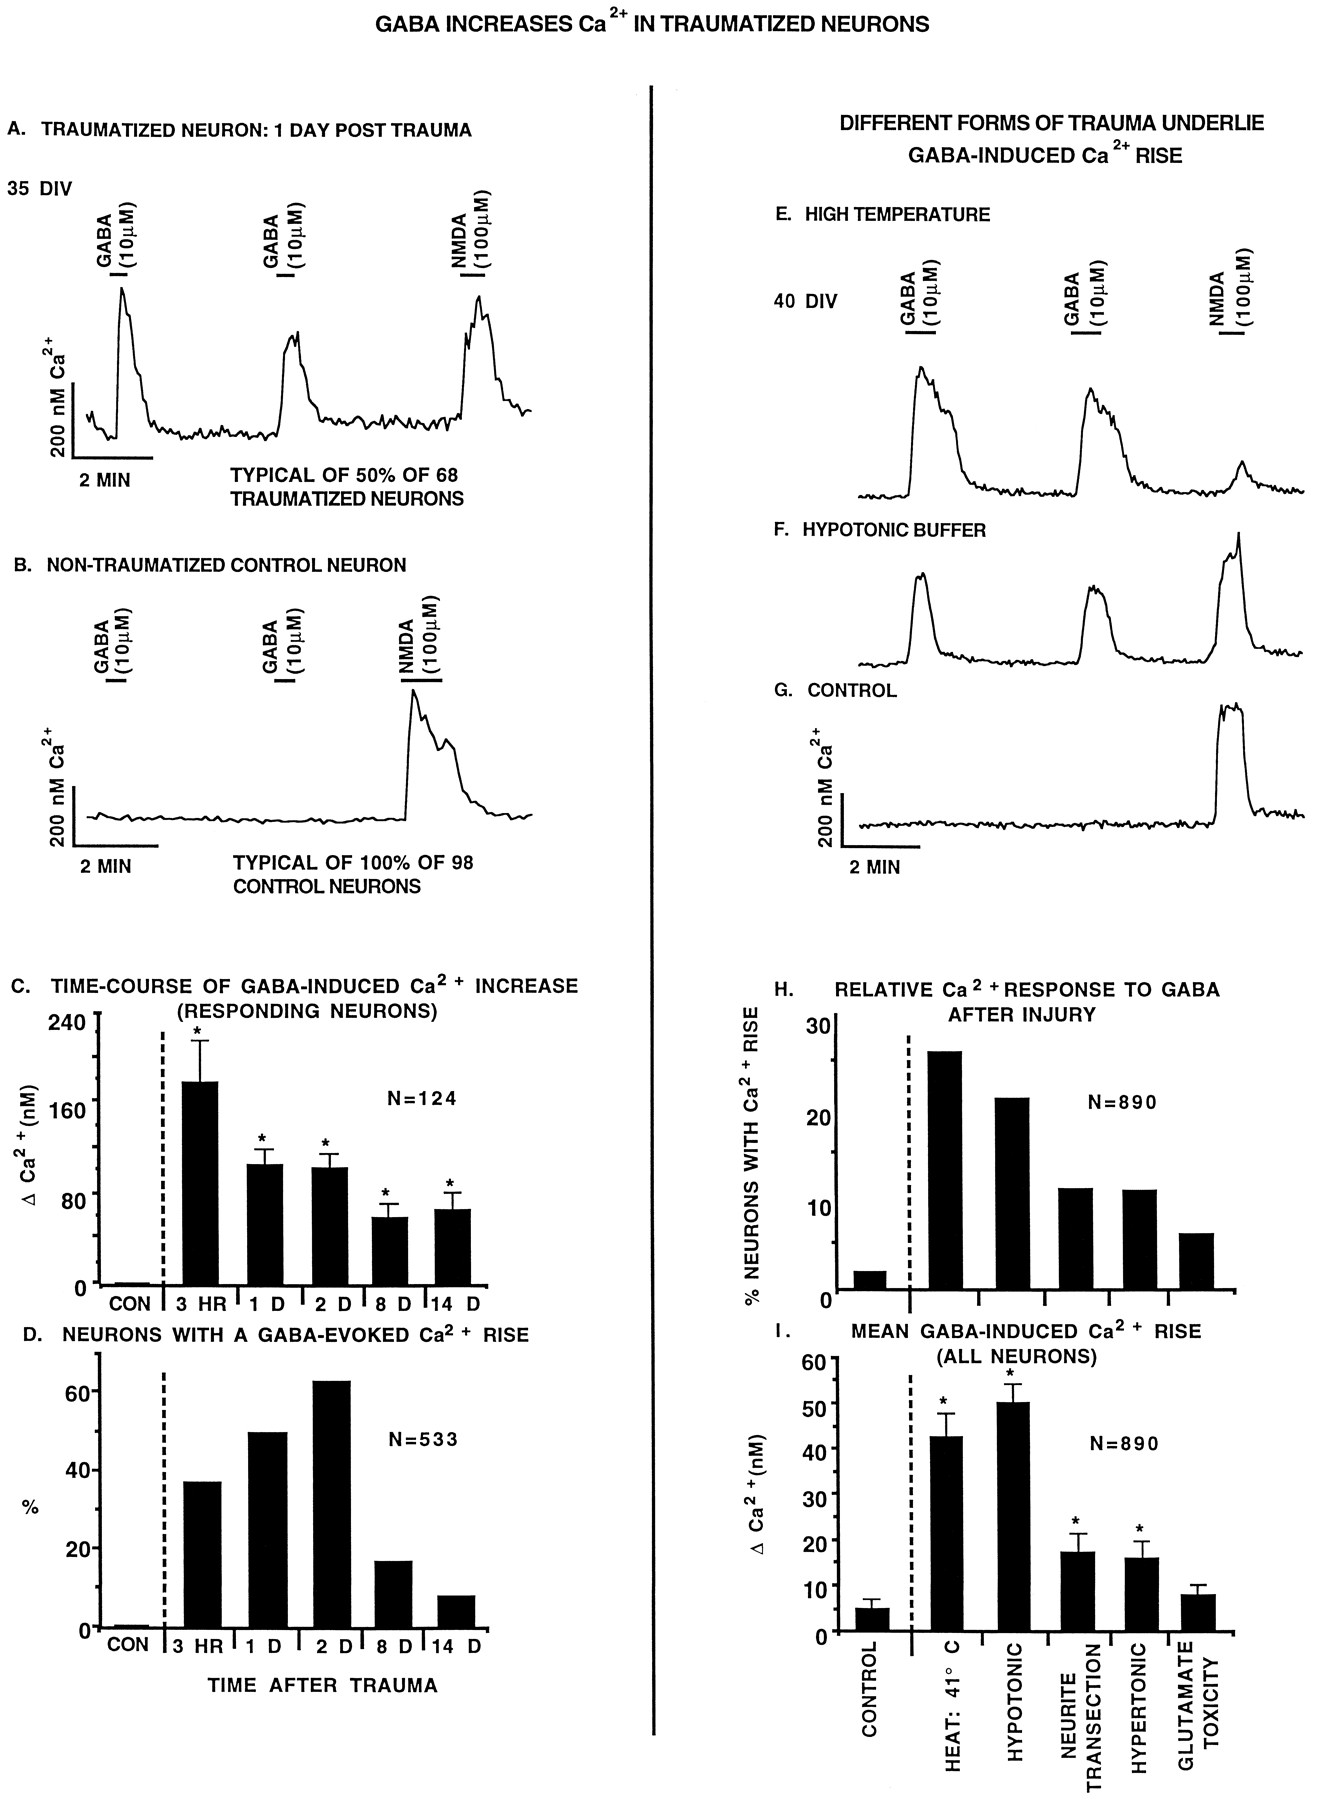 Excitatory Actions of GABA after Neuronal Trauma | Journal of